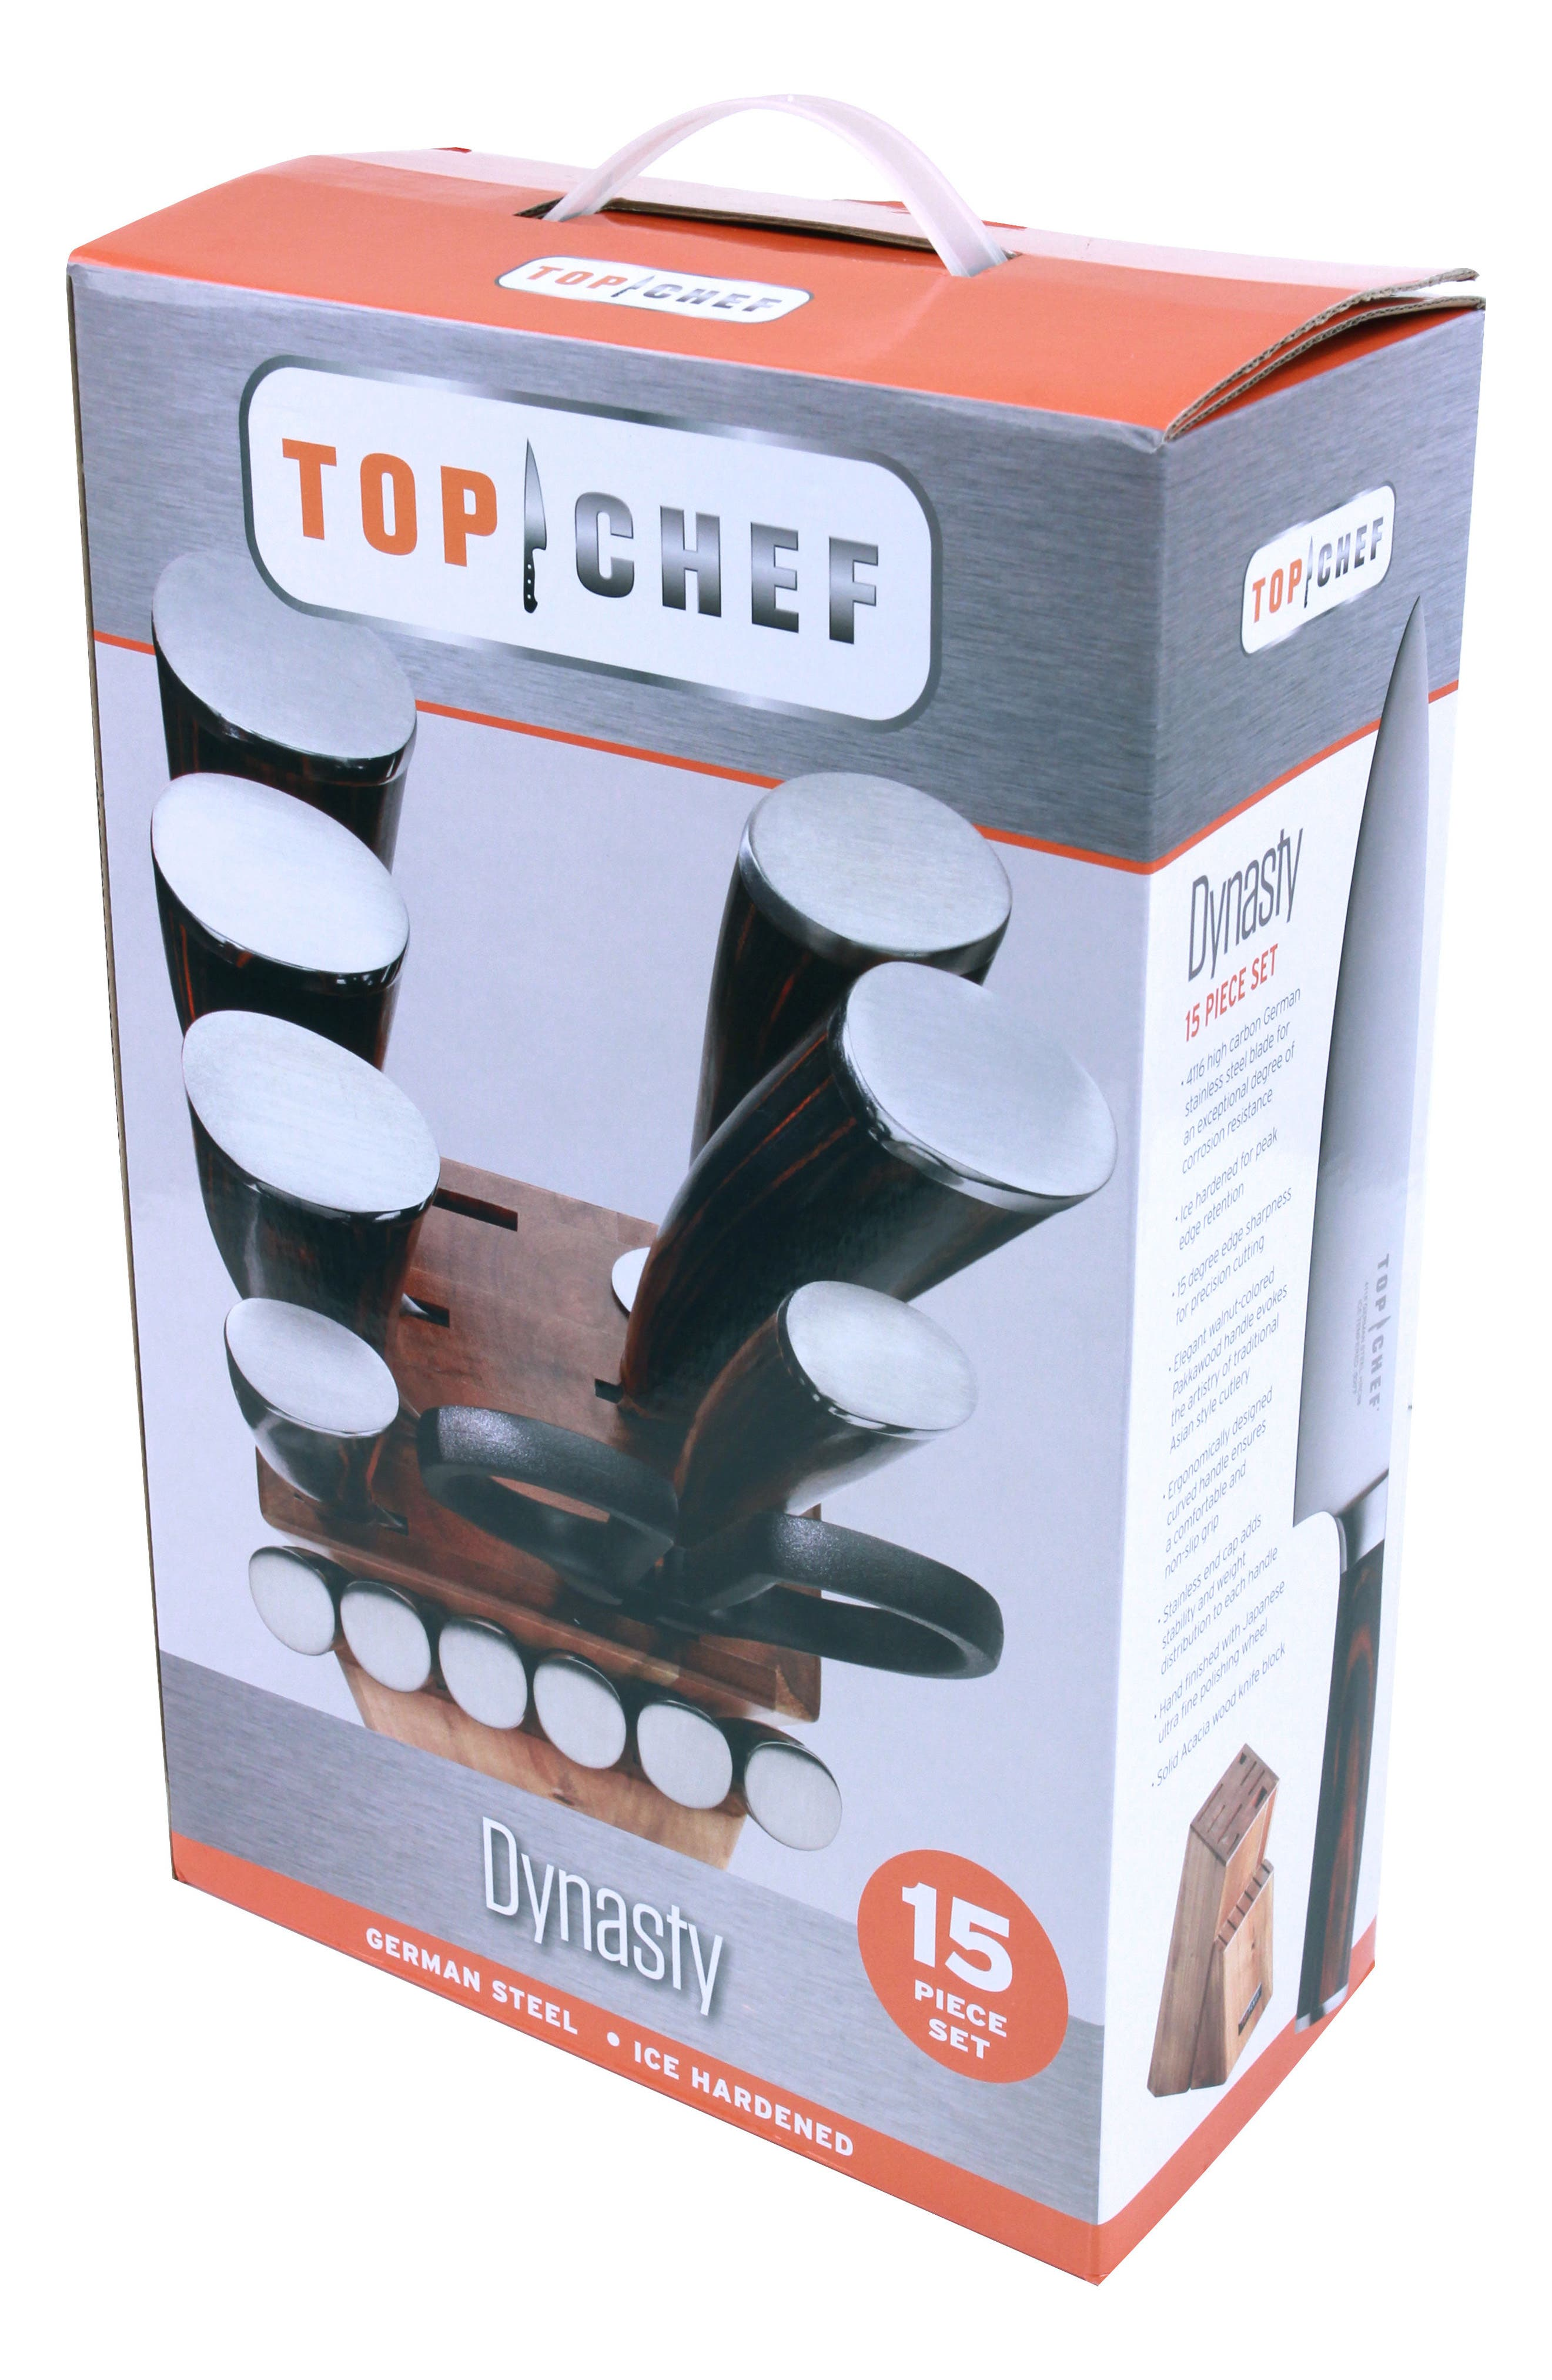 TOP CHEF, Dynasty 15-Piece Knife Block Set, Alternate thumbnail 3, color, BROWN